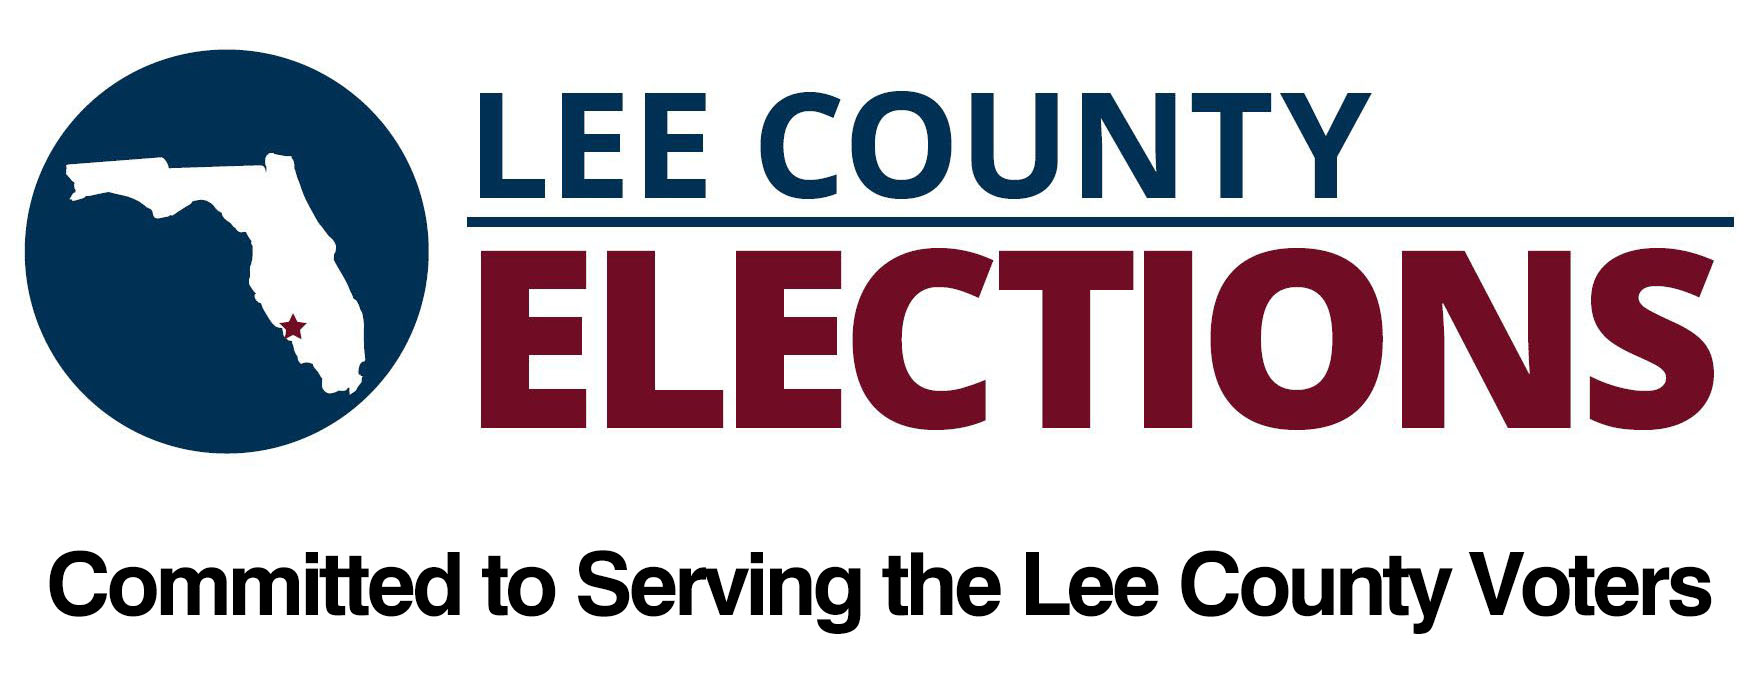 Lee C Elections landscape logo 2017